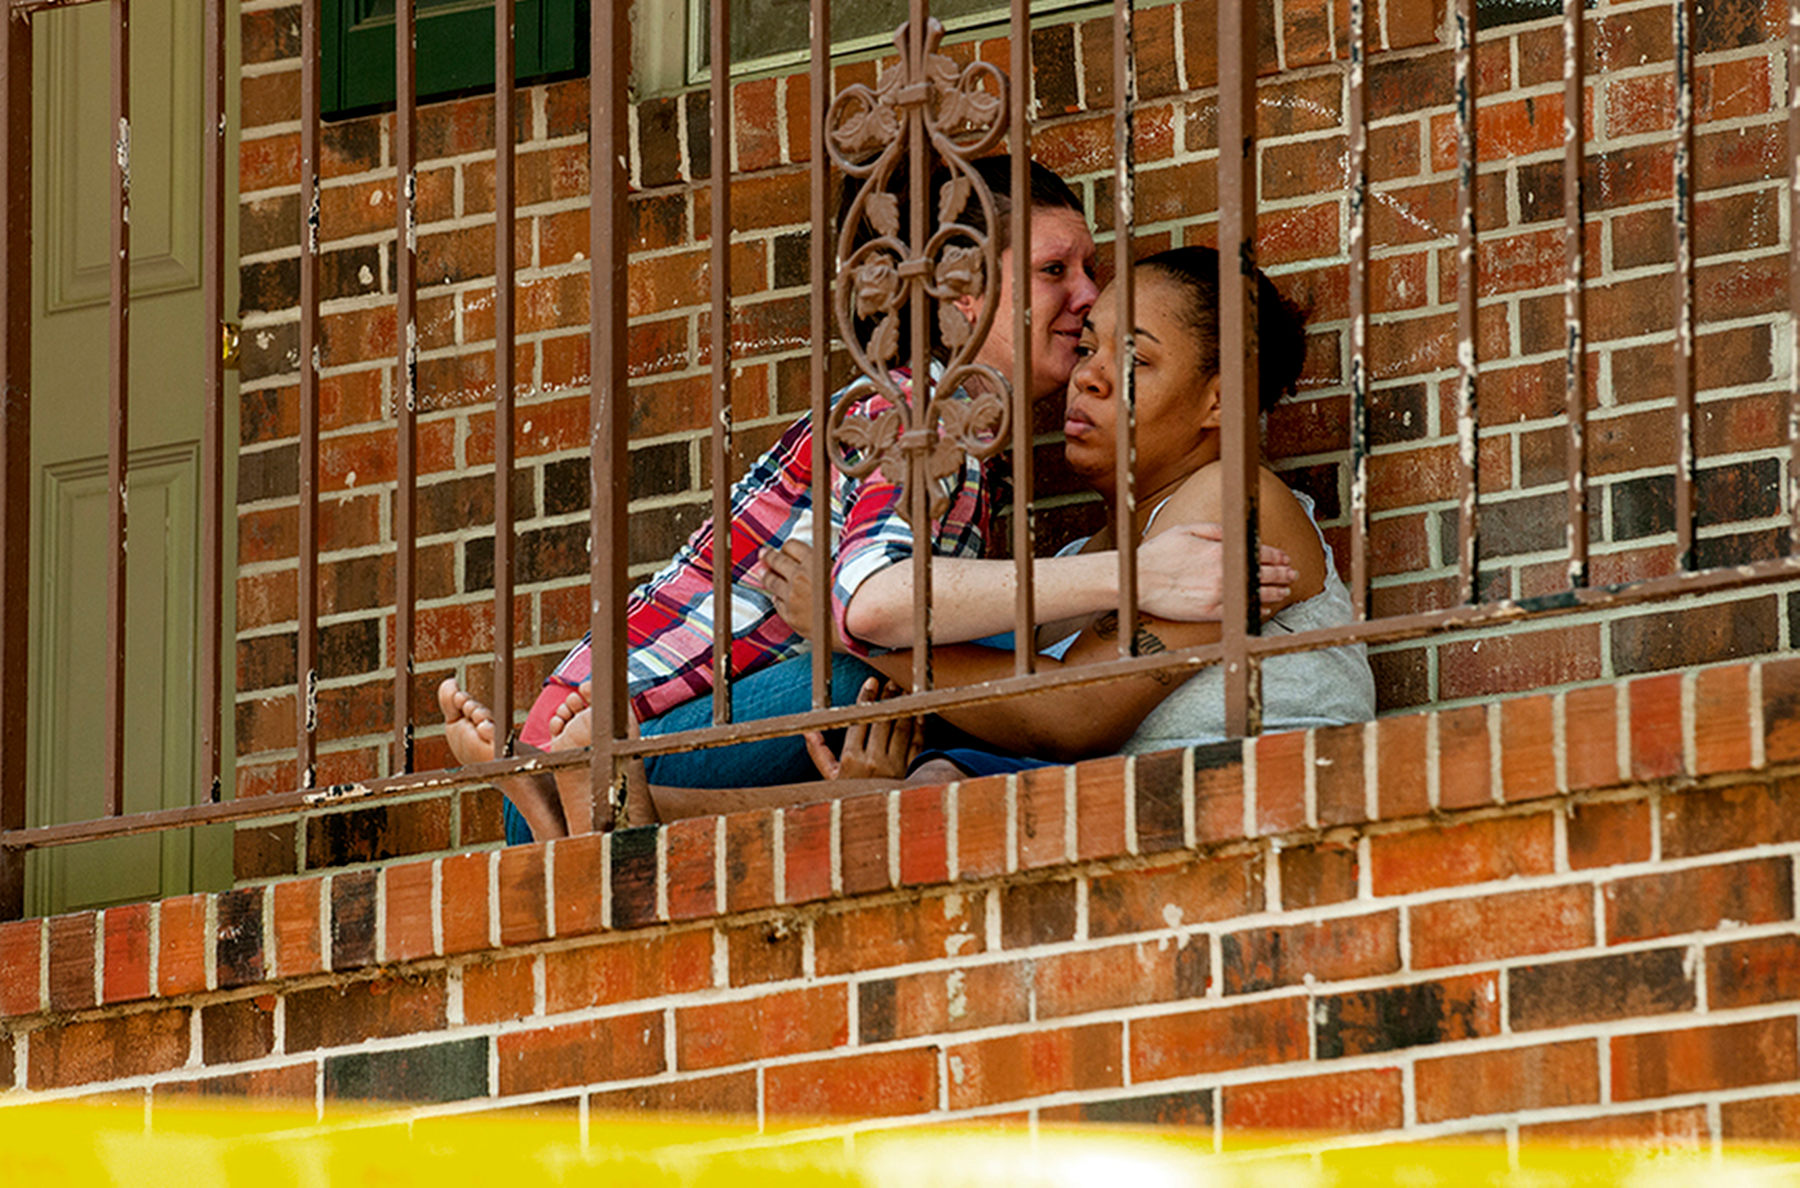 First Place | Spot NewsCindy Burnham, The Fayetteville ObserverJudge's Comments: Good sense of scene and emotion between people. Would like the caption to say who is who in the frame.A neighbor comforts Carla Jones after police and medics were called to the Georgetown Apartments on Tallywood Drive about noon after receiving a report that a child was not responsive.